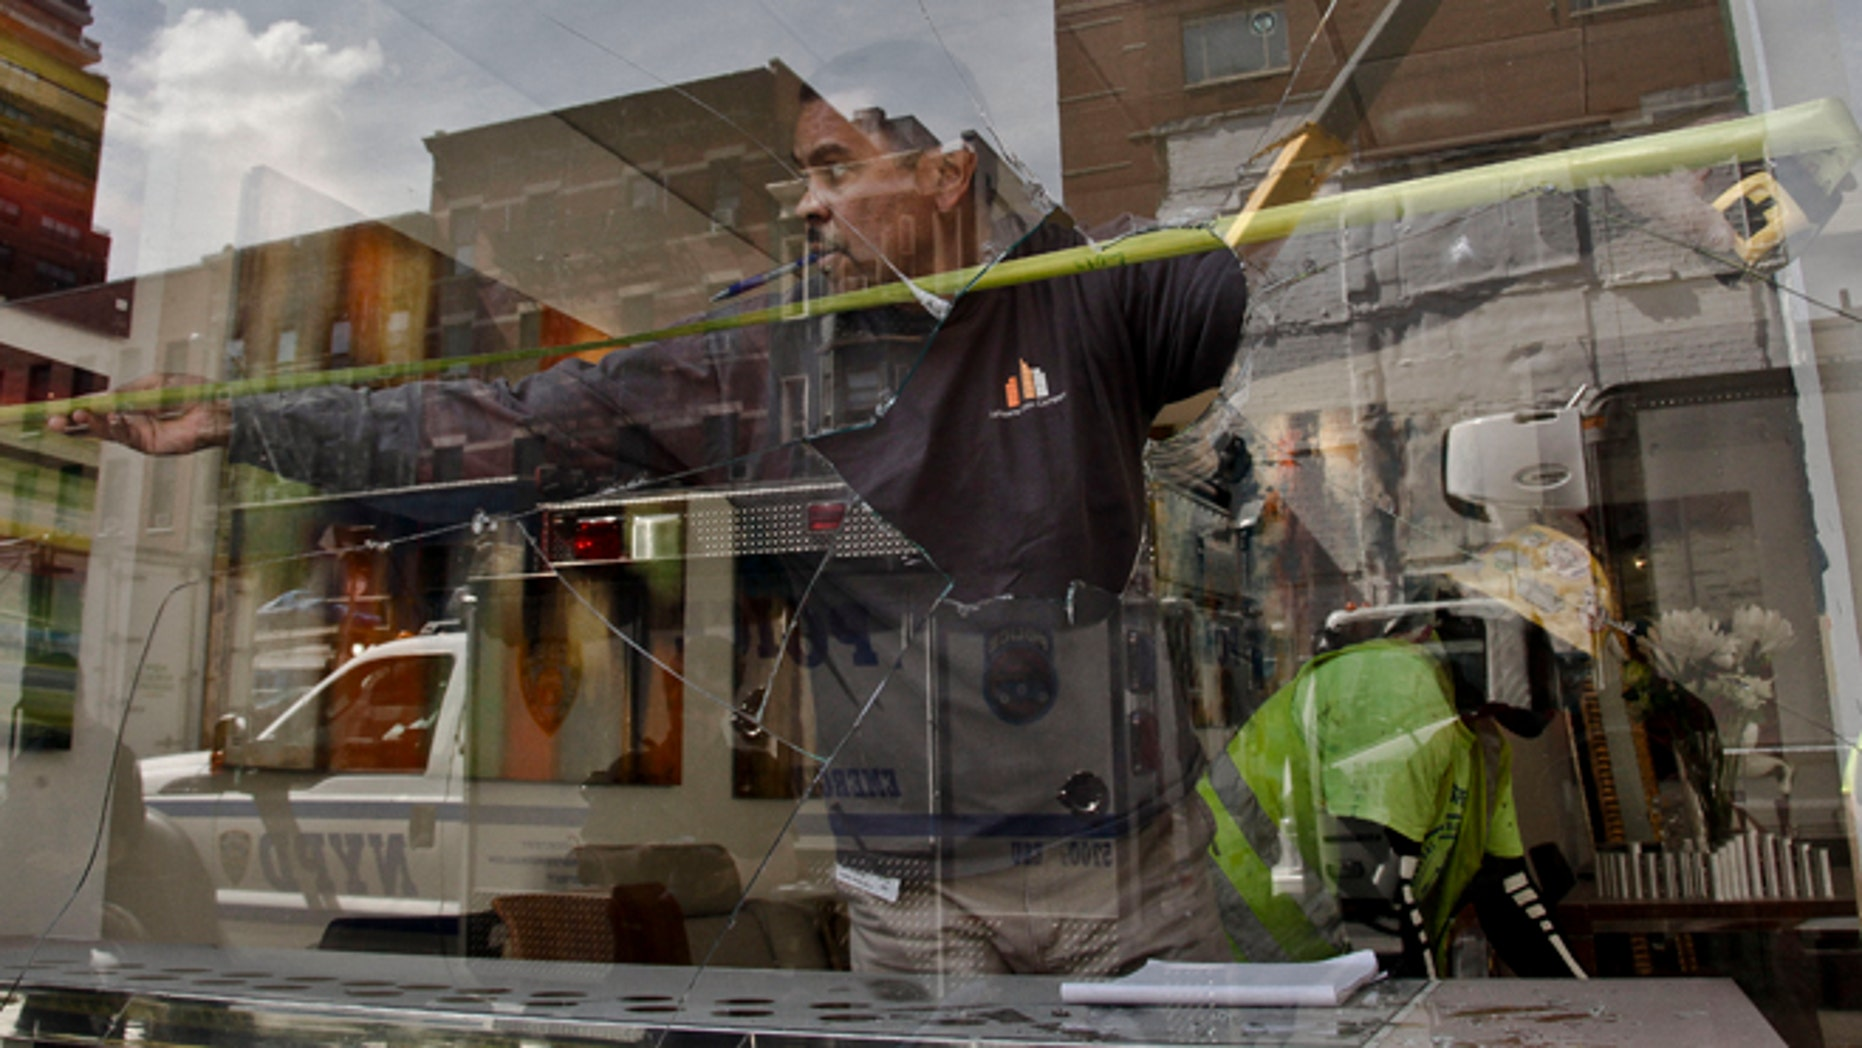 Aug. 21, 2012: A workers measure the area of a shattered window at the Kolb Art Gallery following damage from an intentional underground explosion on the Second Avenue subway project on East 72nd Street.